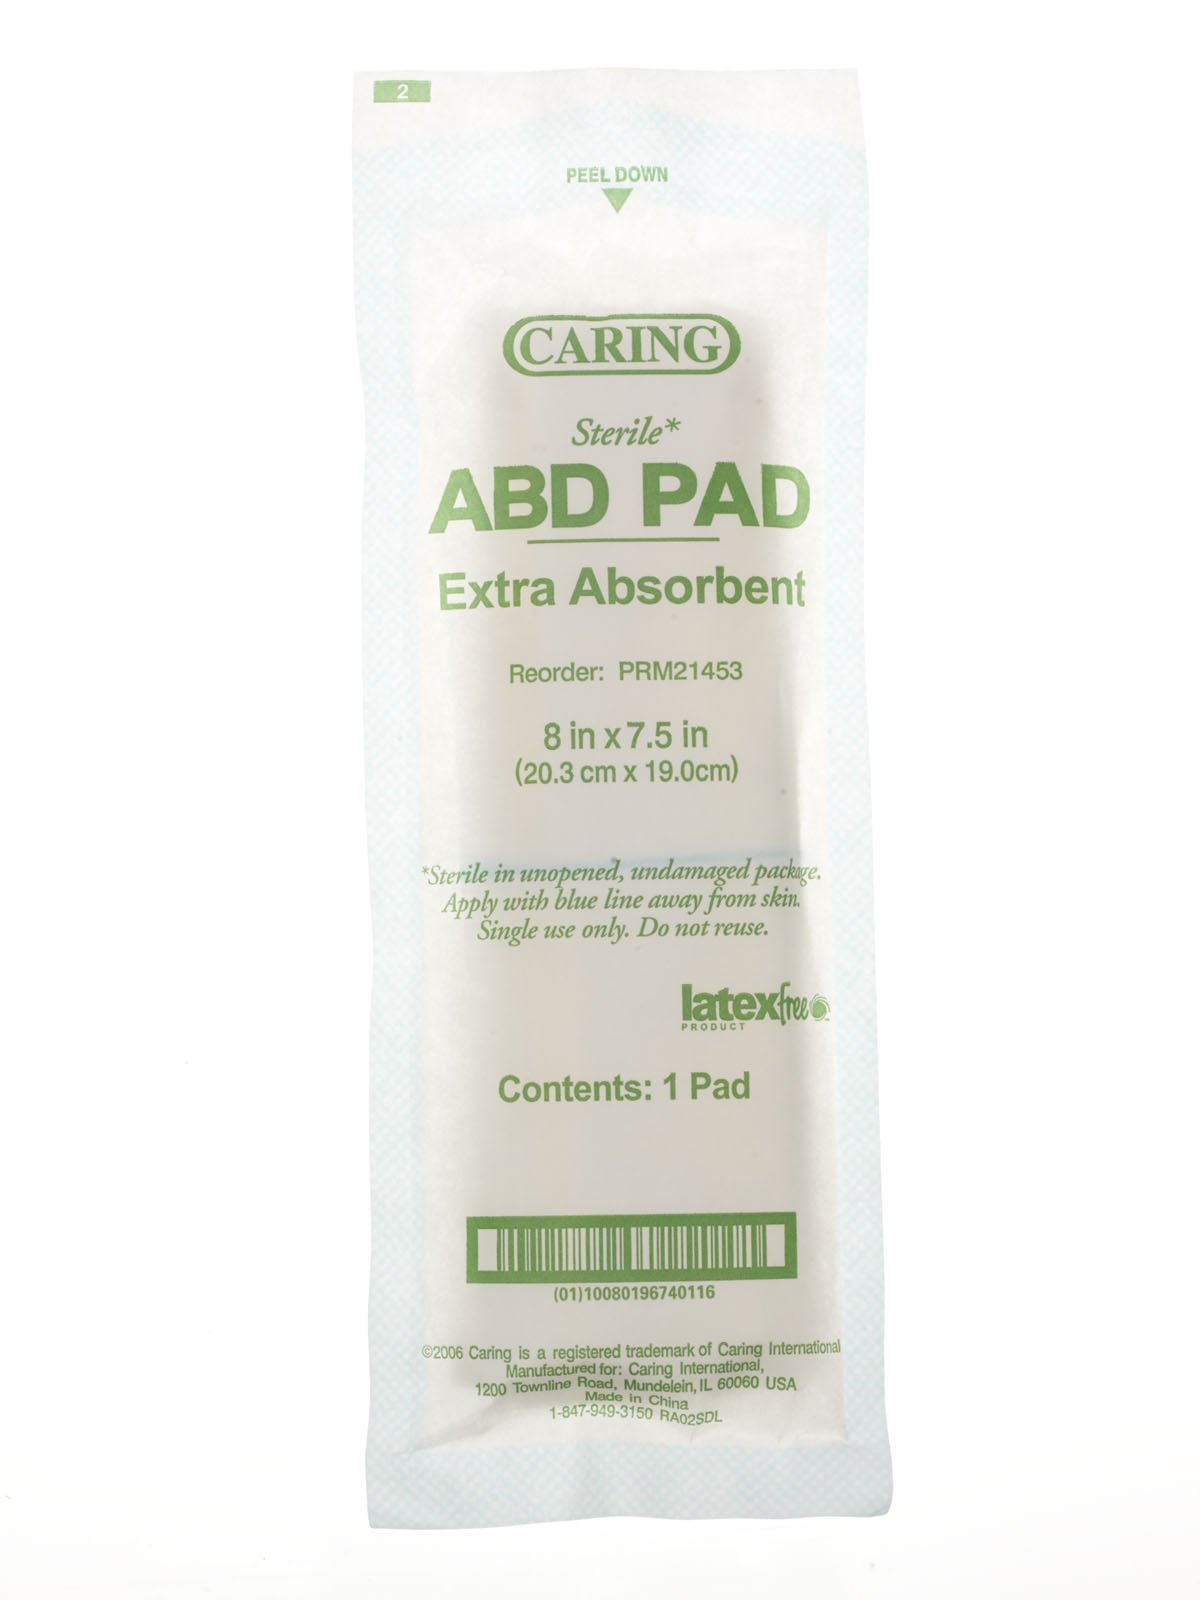 Medline Pad Abdominal Caring, 8 Inch x 7.5 Inch, 240 Count